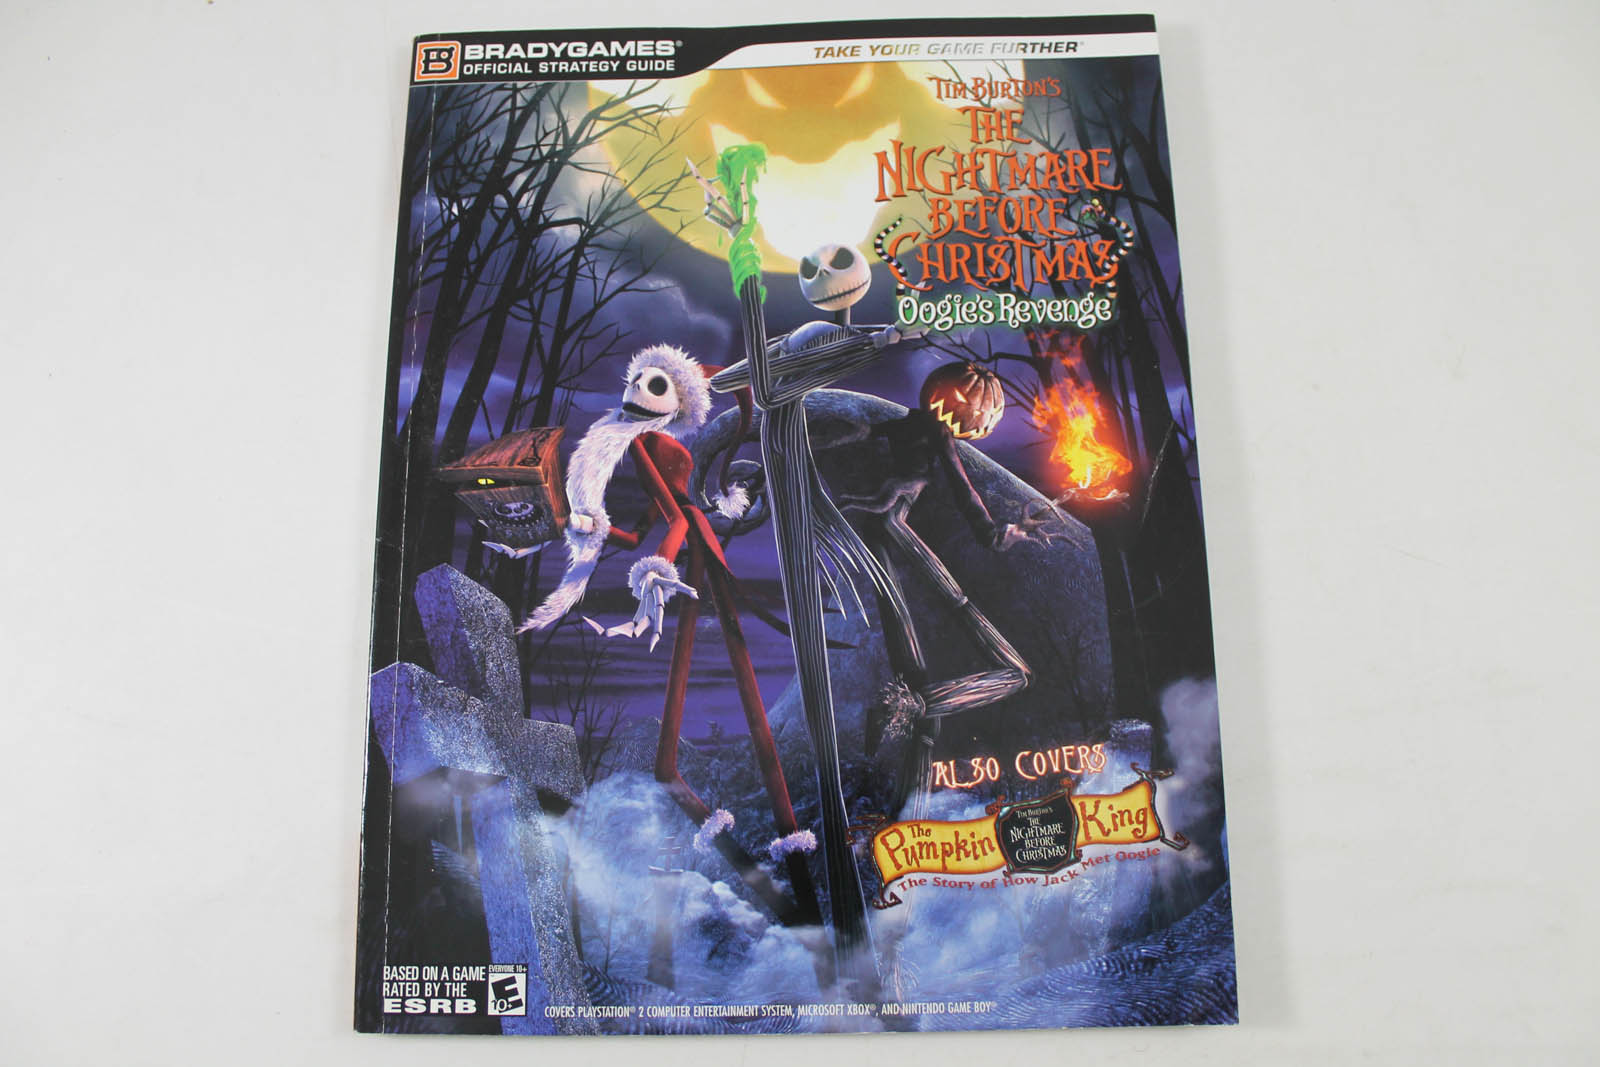 The Nightmare Before Christmas: Oogie\'s Revenge Guide - Brady Games